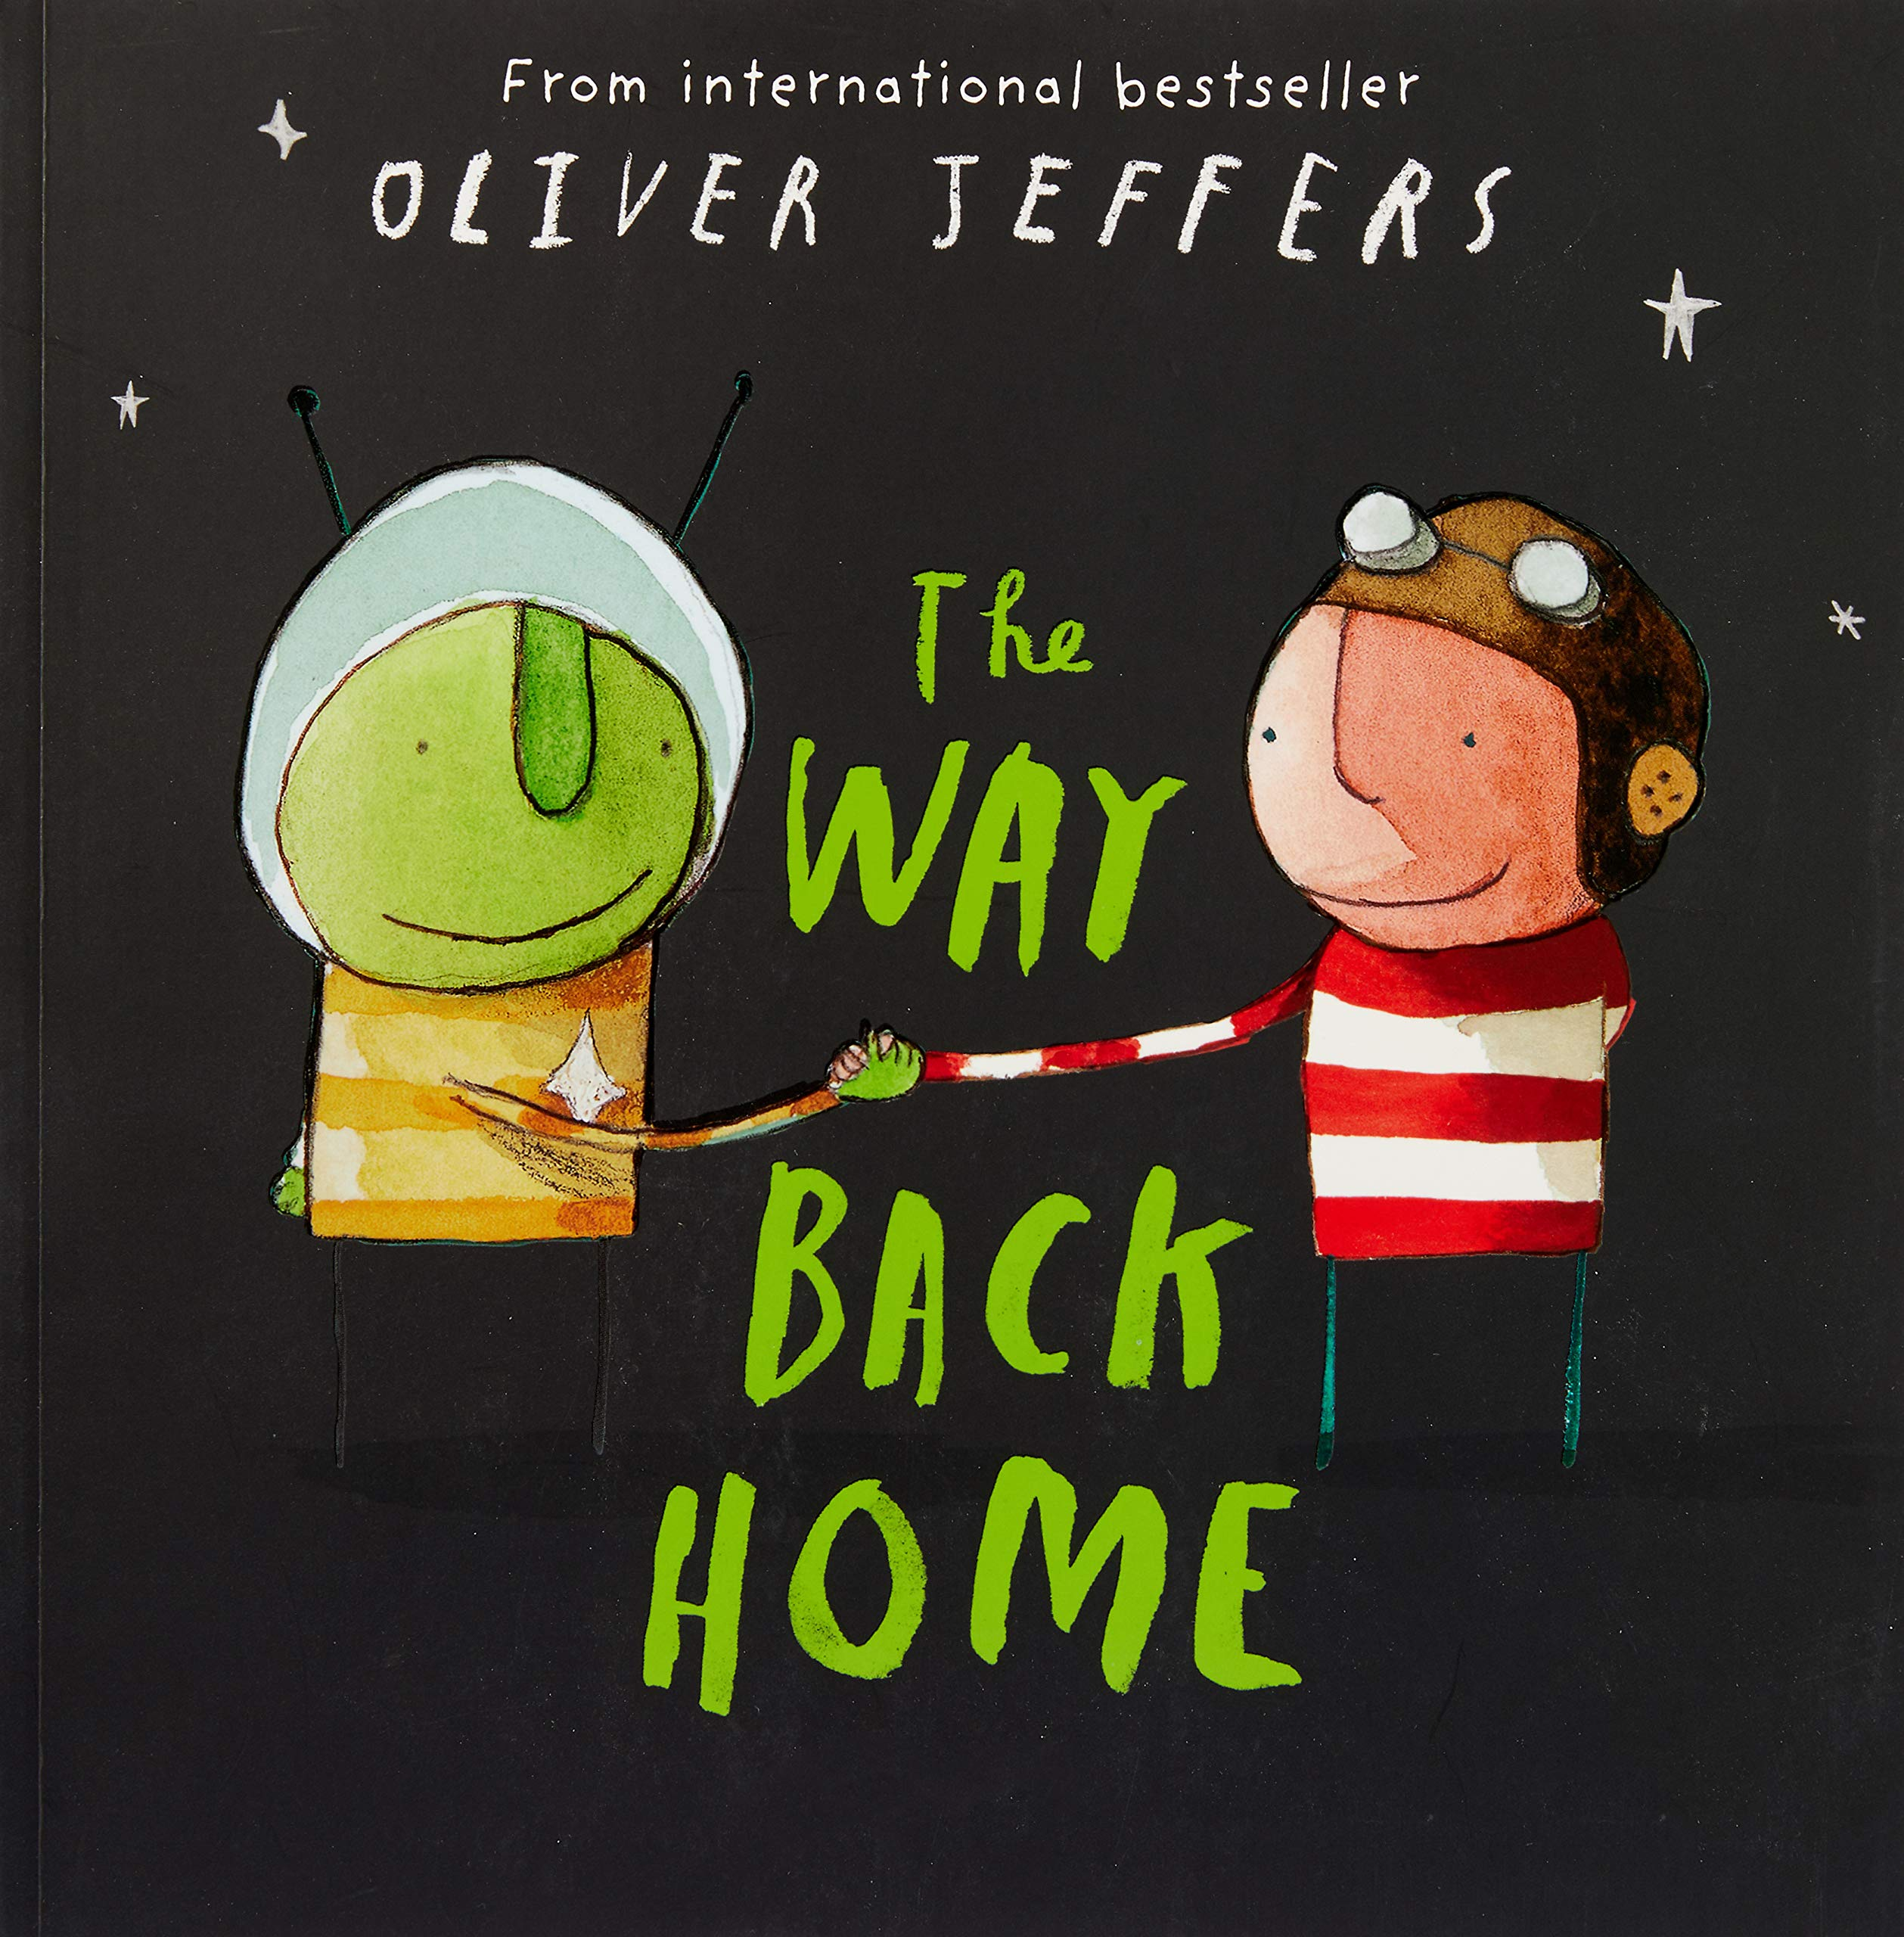 The Way Back Home: Amazon.co.uk: Jeffers, Oliver, Jeffers, Oliver: Books